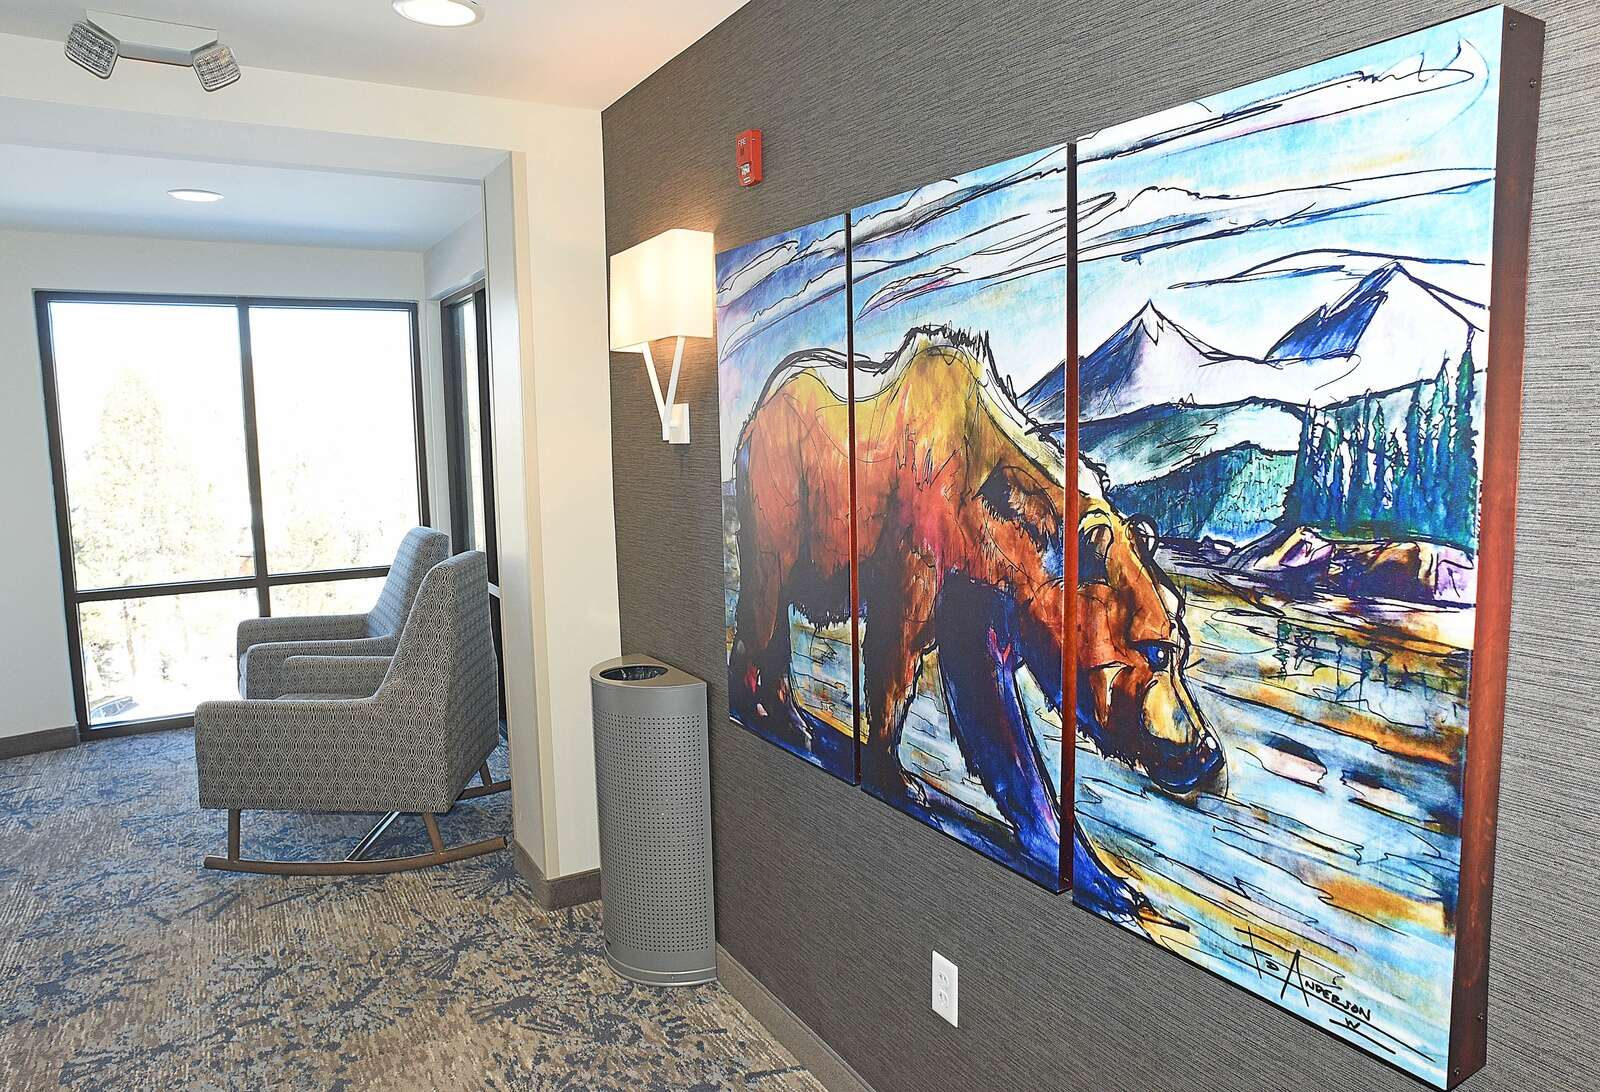 Grant D'Entremont, general manager at the Residence Inn by Marriott, said guests will see plenty of artwork of wildlife on the walls of the hotel, and he said it's not uncommon to see bears and moose just outside the hotel along nearby Fish Creek. (Photo by John F. Russell)